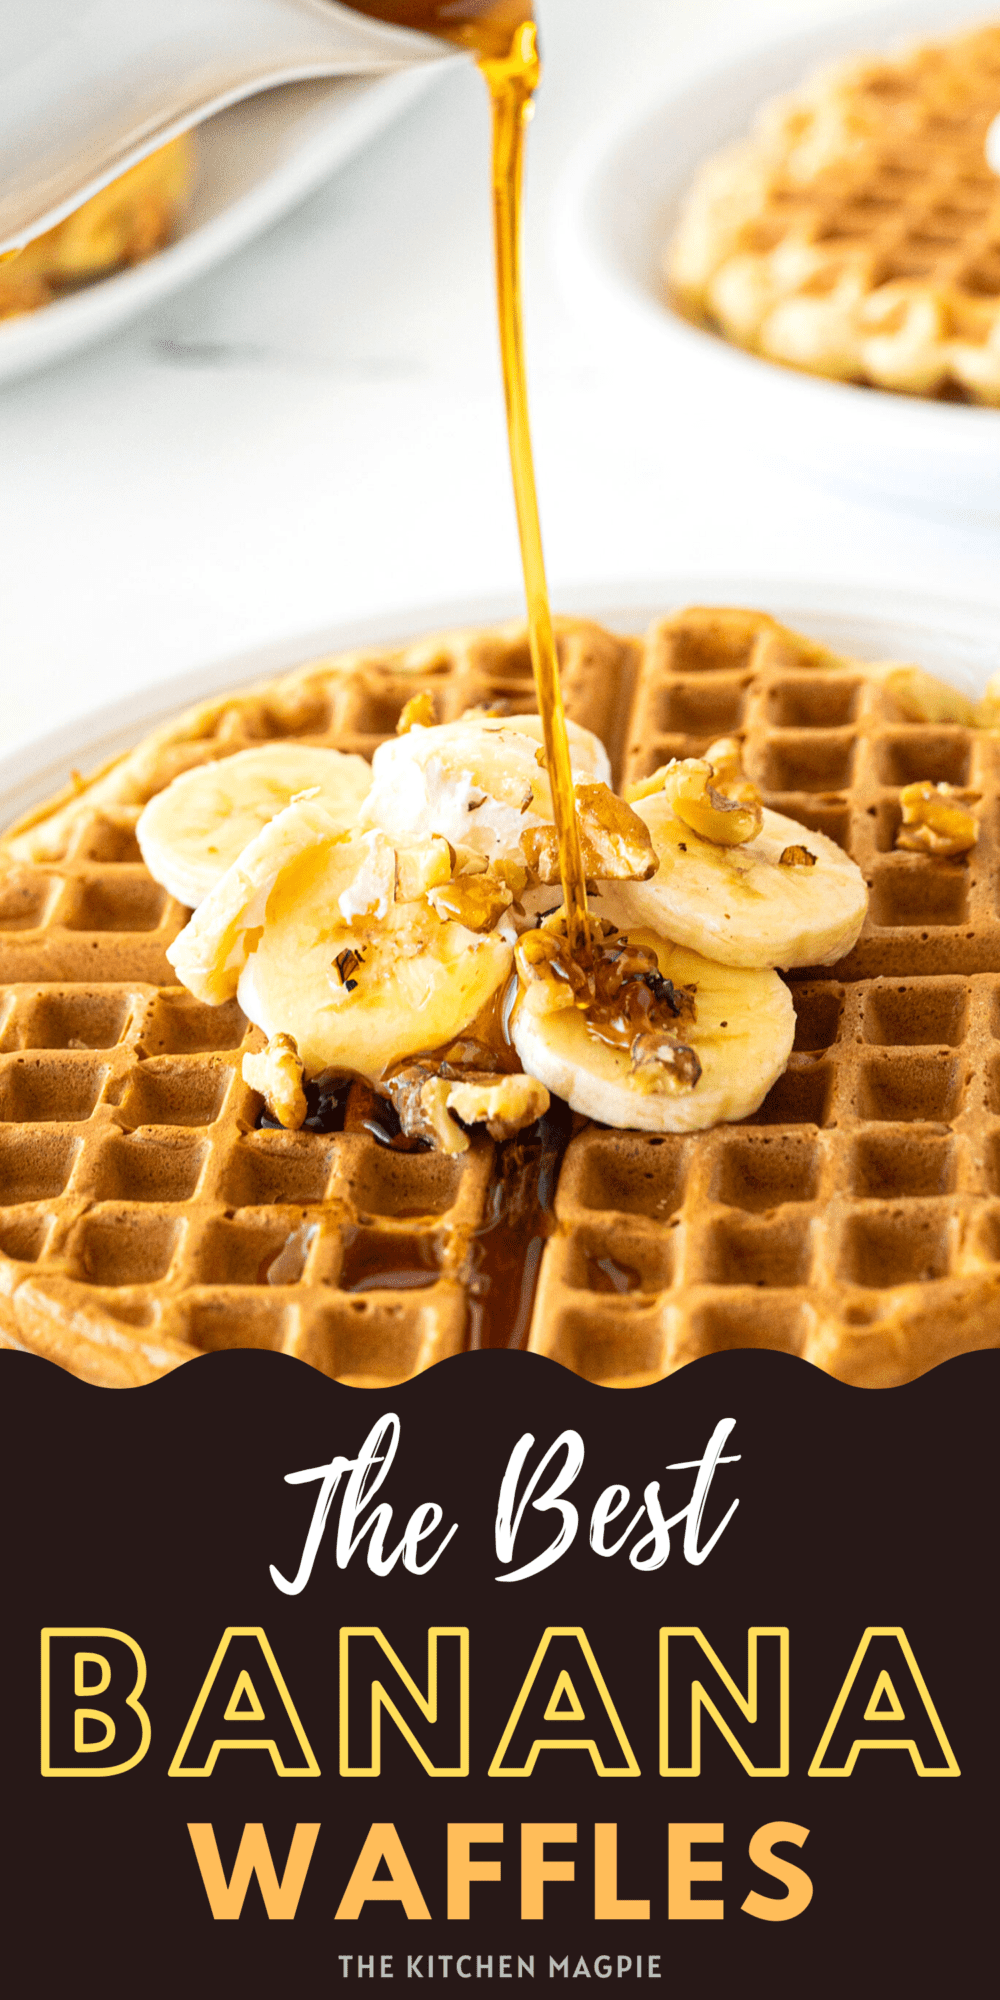 These banana waffles are the perfect weekend treat! A great way to use up overripe bananas for a delicious breakfast that will thrill everyone!